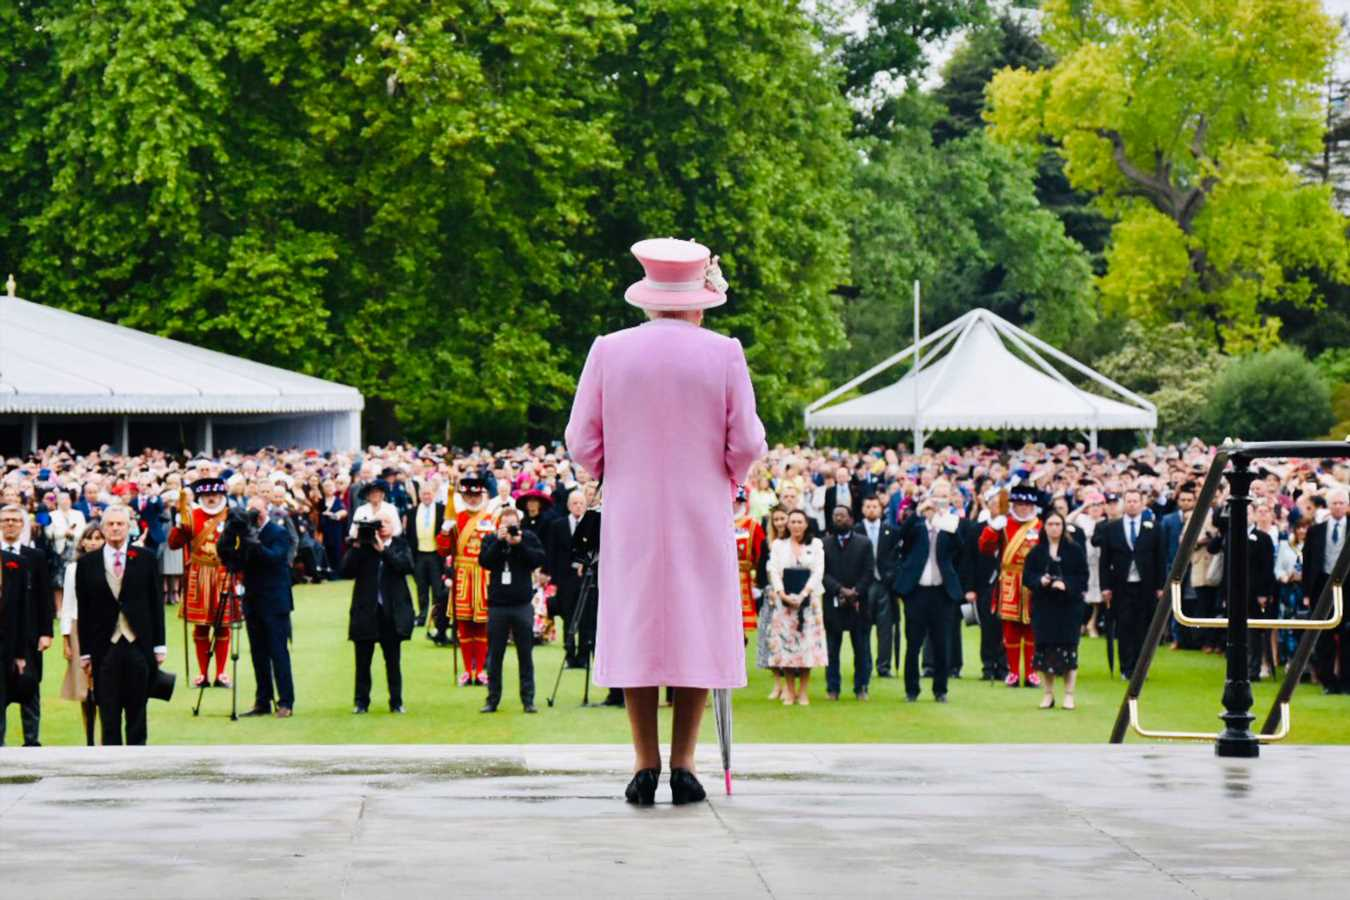 See Rare View of Queen Elizabeth's Perspective in Arresting Photo at Palace Garden Party